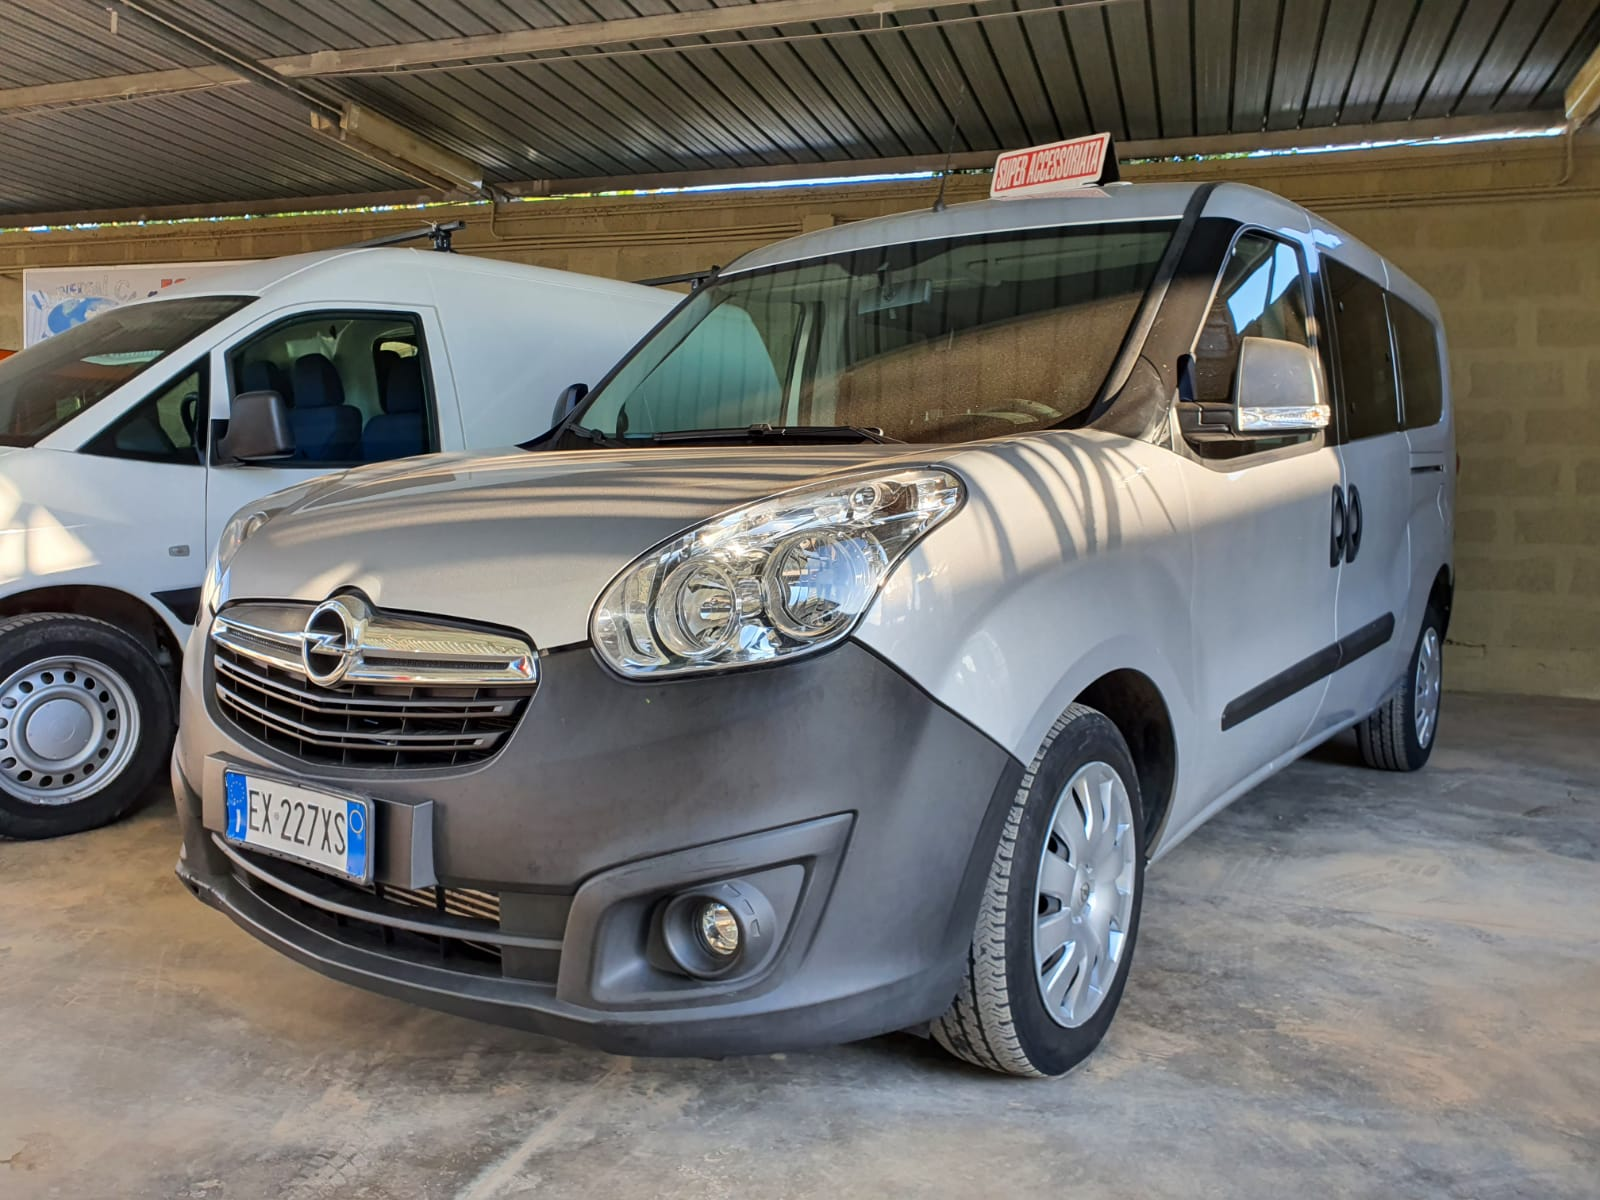 Read more about the article Opel combo 1.6 Diesel del 2015 Maxi volume 5 posti